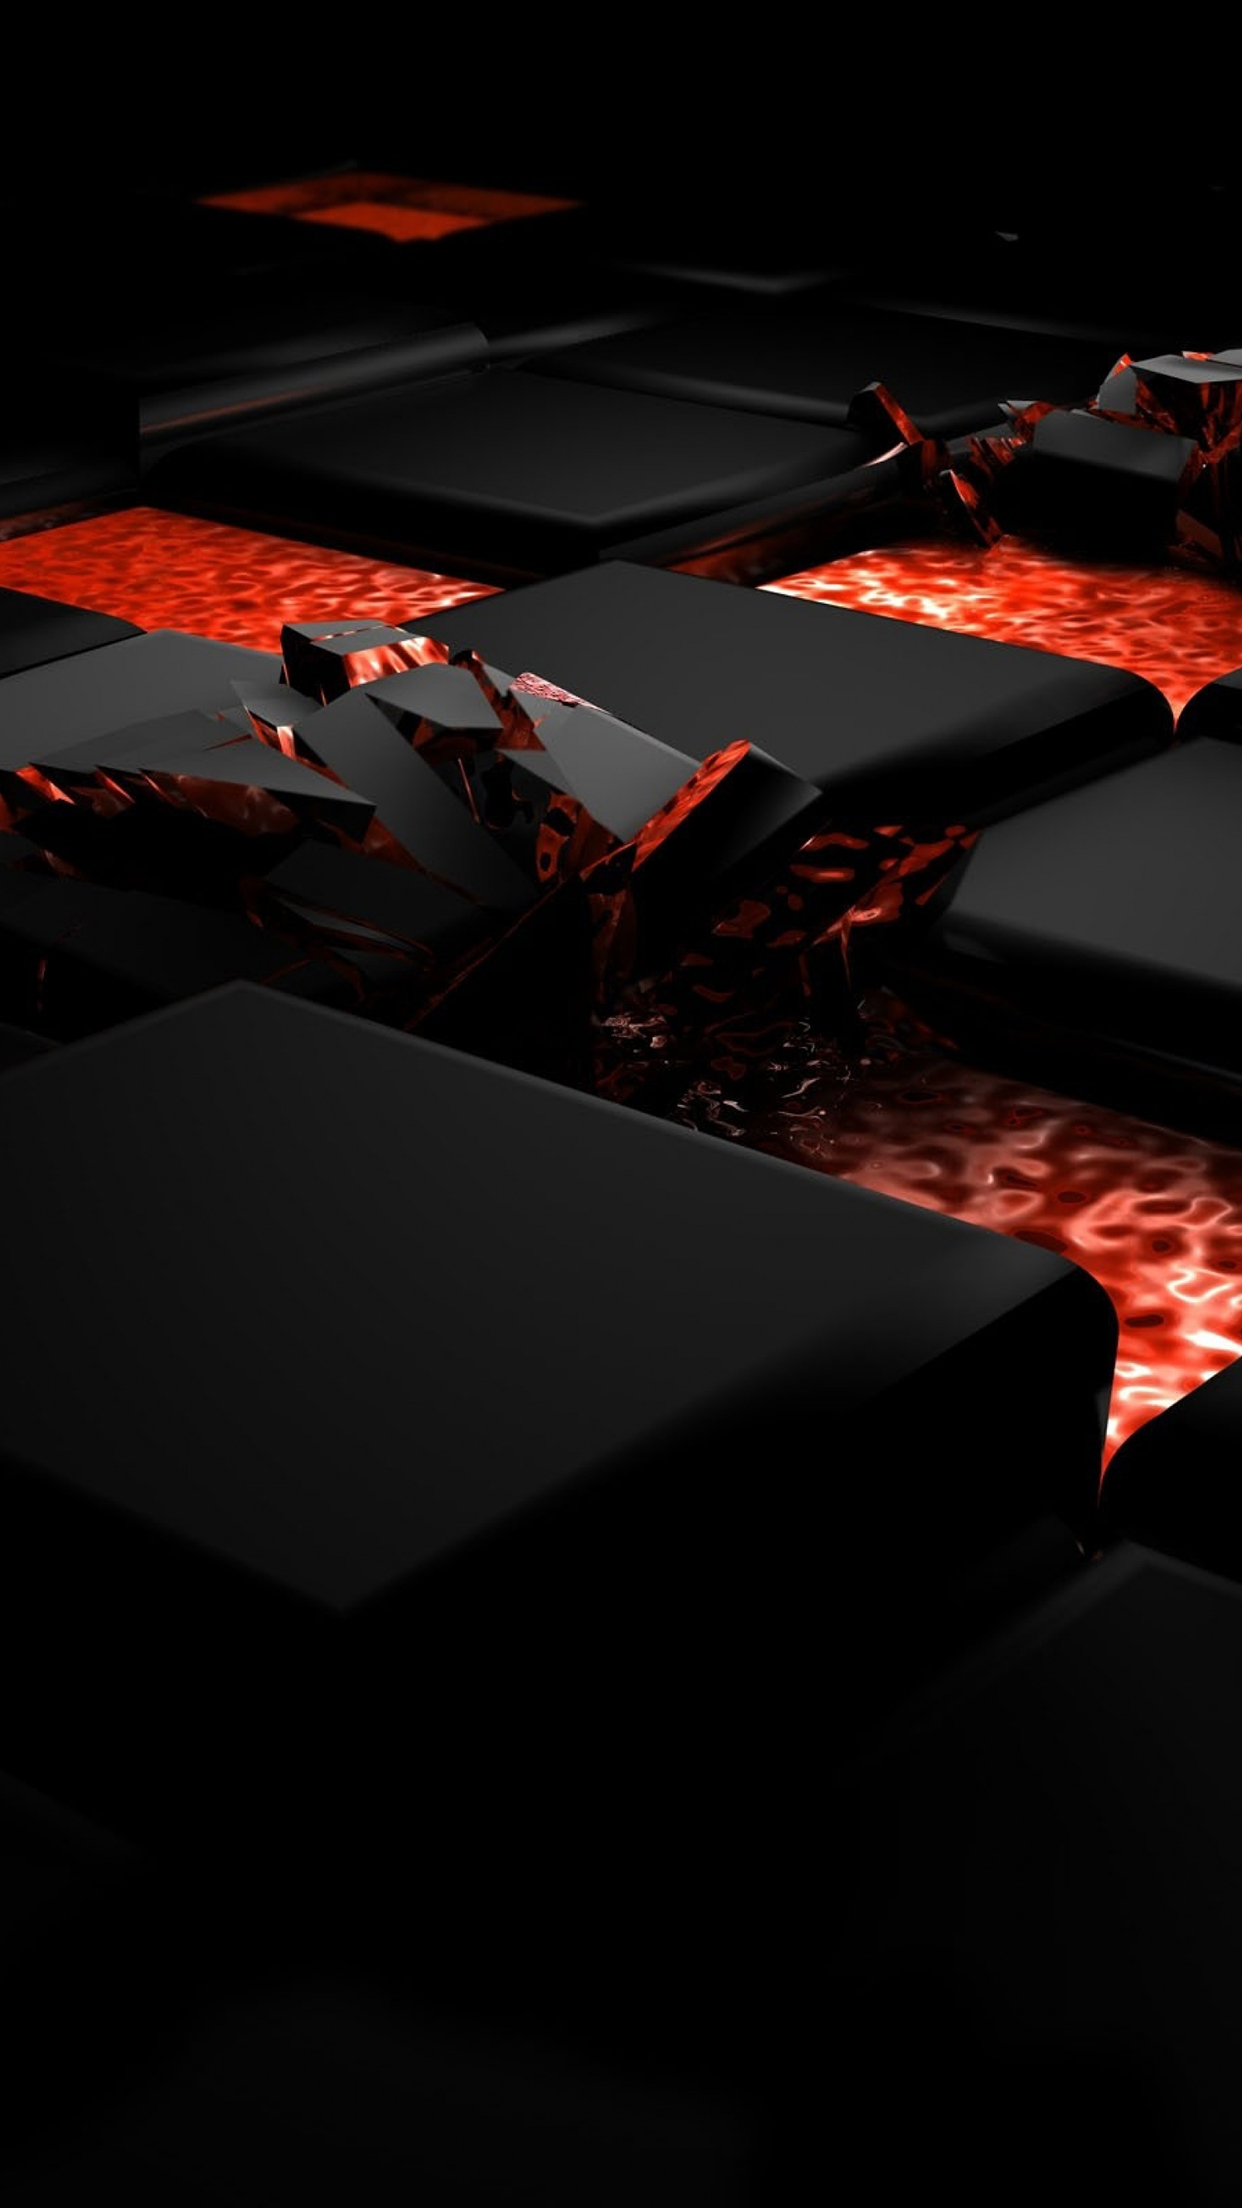 3D Picture Cube Fire 3Wallpapers iPhone Parallax 3D Picture : Cube Fire